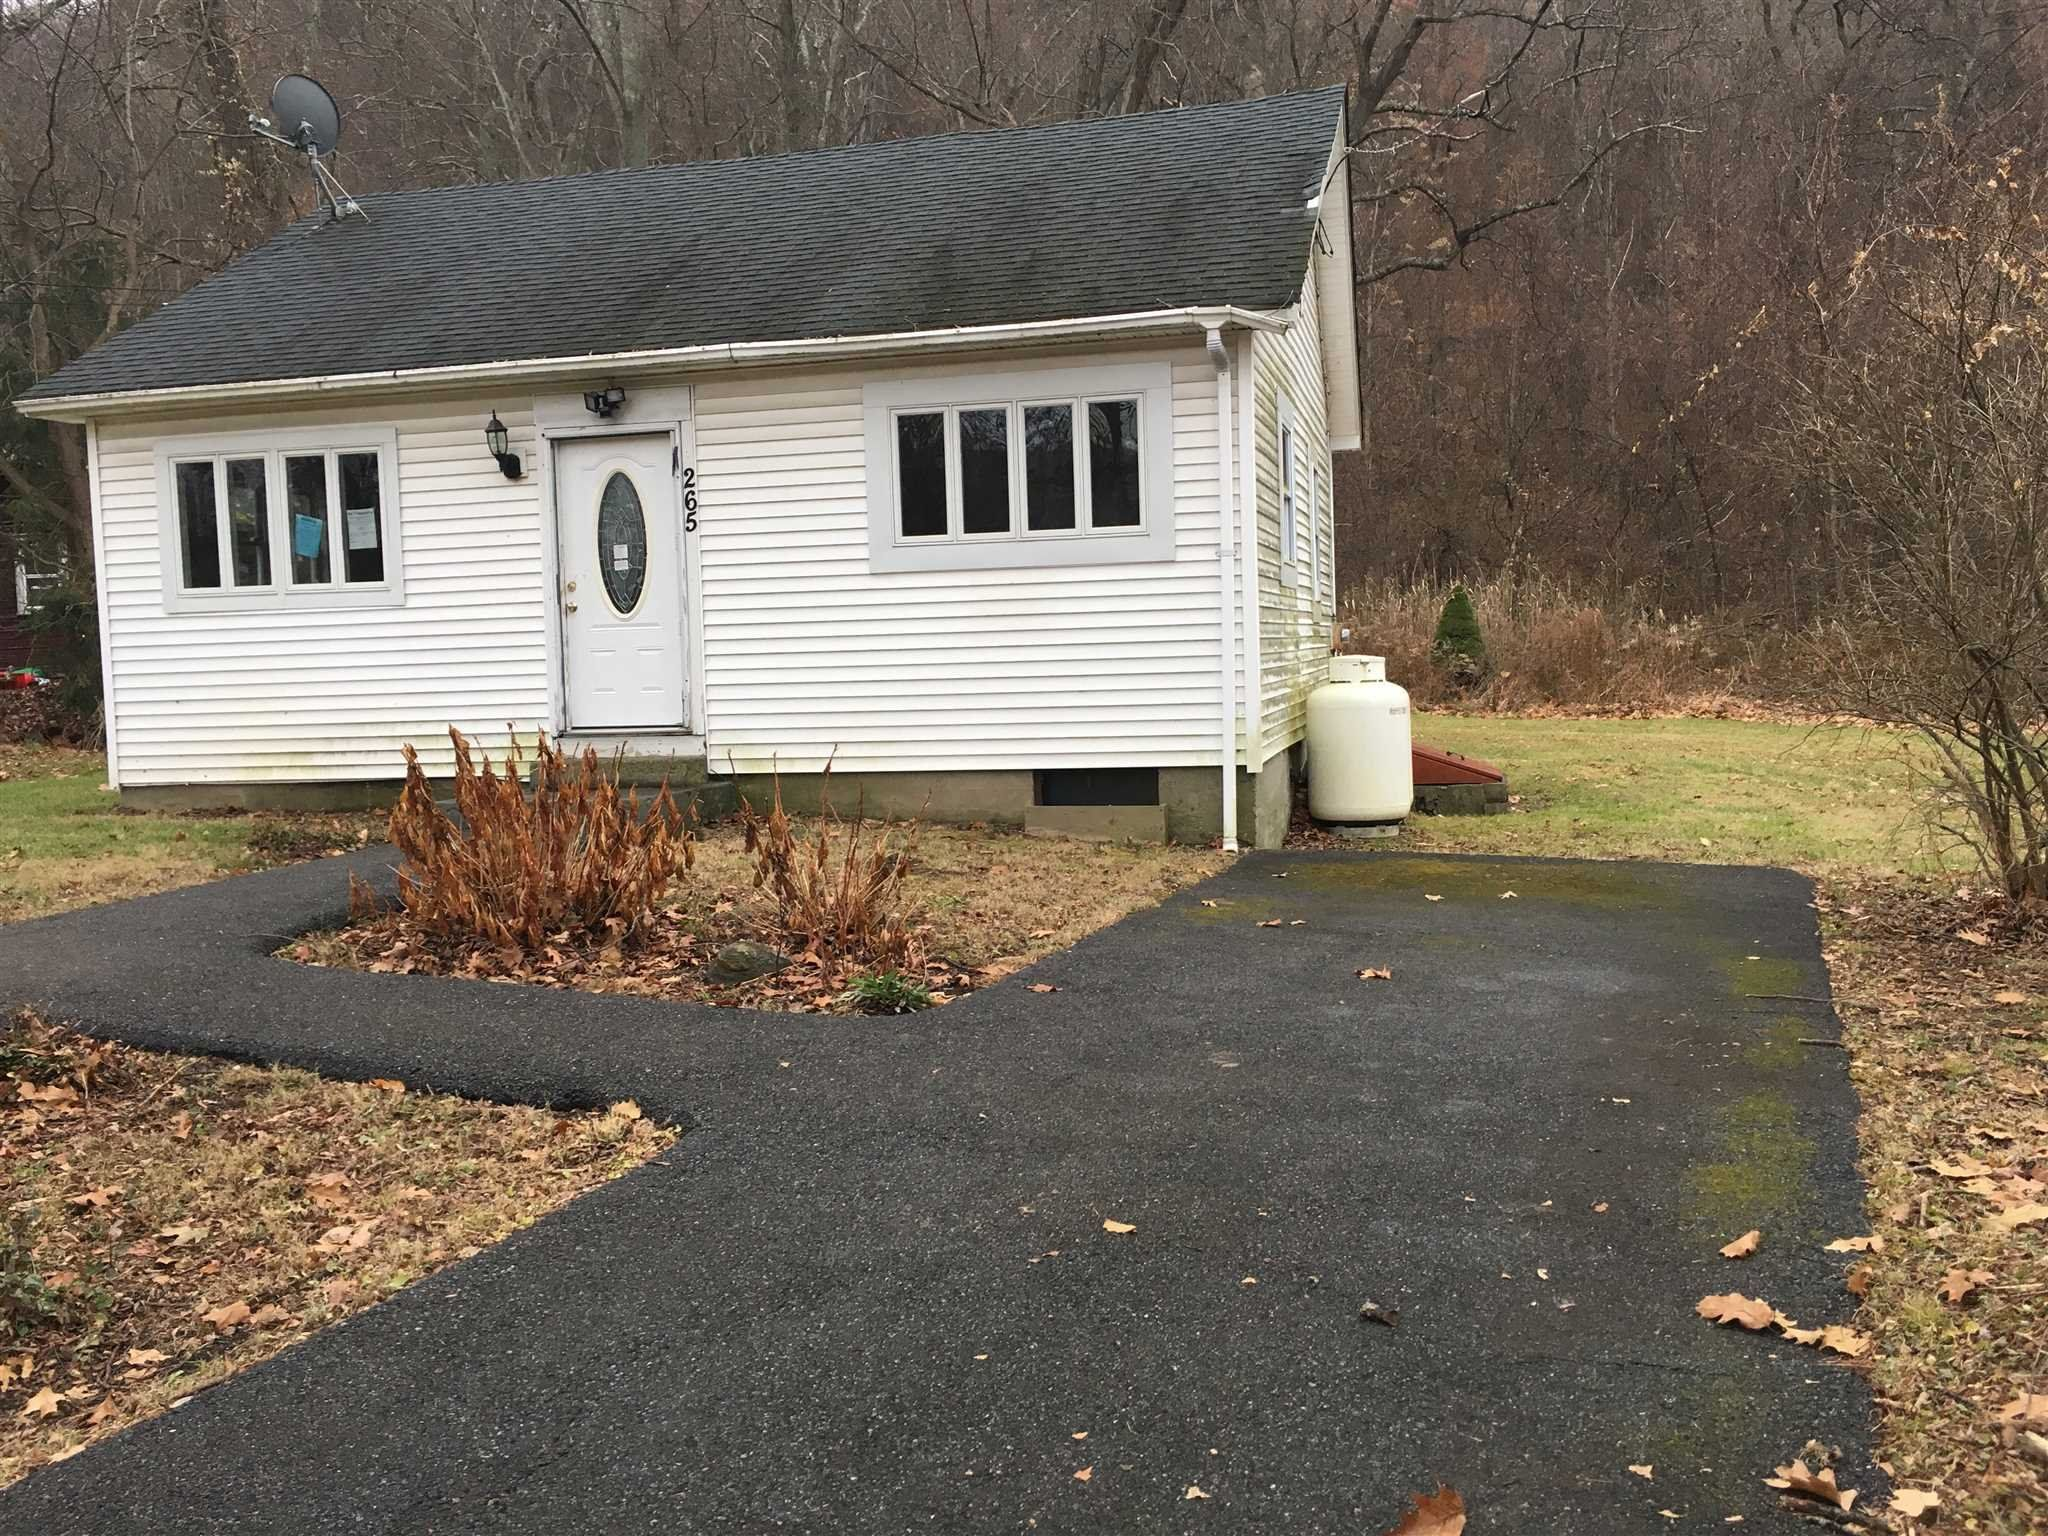 265 Old Pawling Rd, Pawling, NY 12564 - 2 Bed, 1 Bath Single-Family Home -  MLS #380136 - 5 Photos   Trulia